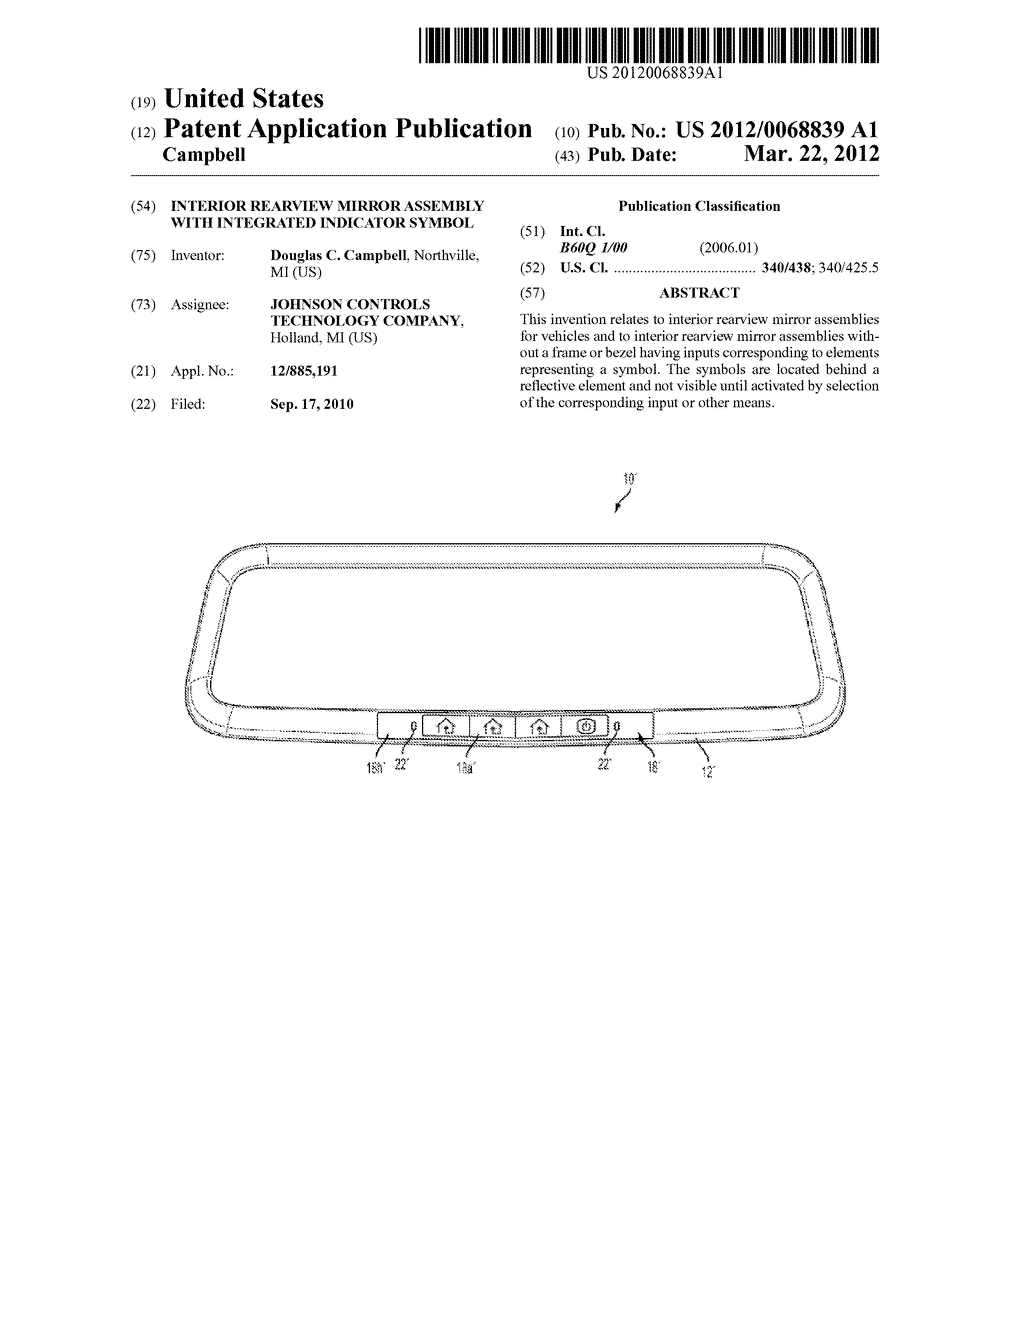 INTERIOR REARVIEW MIRROR ASSEMBLY WITH INTEGRATED INDICATOR SYMBOL - diagram, schematic, and image 01